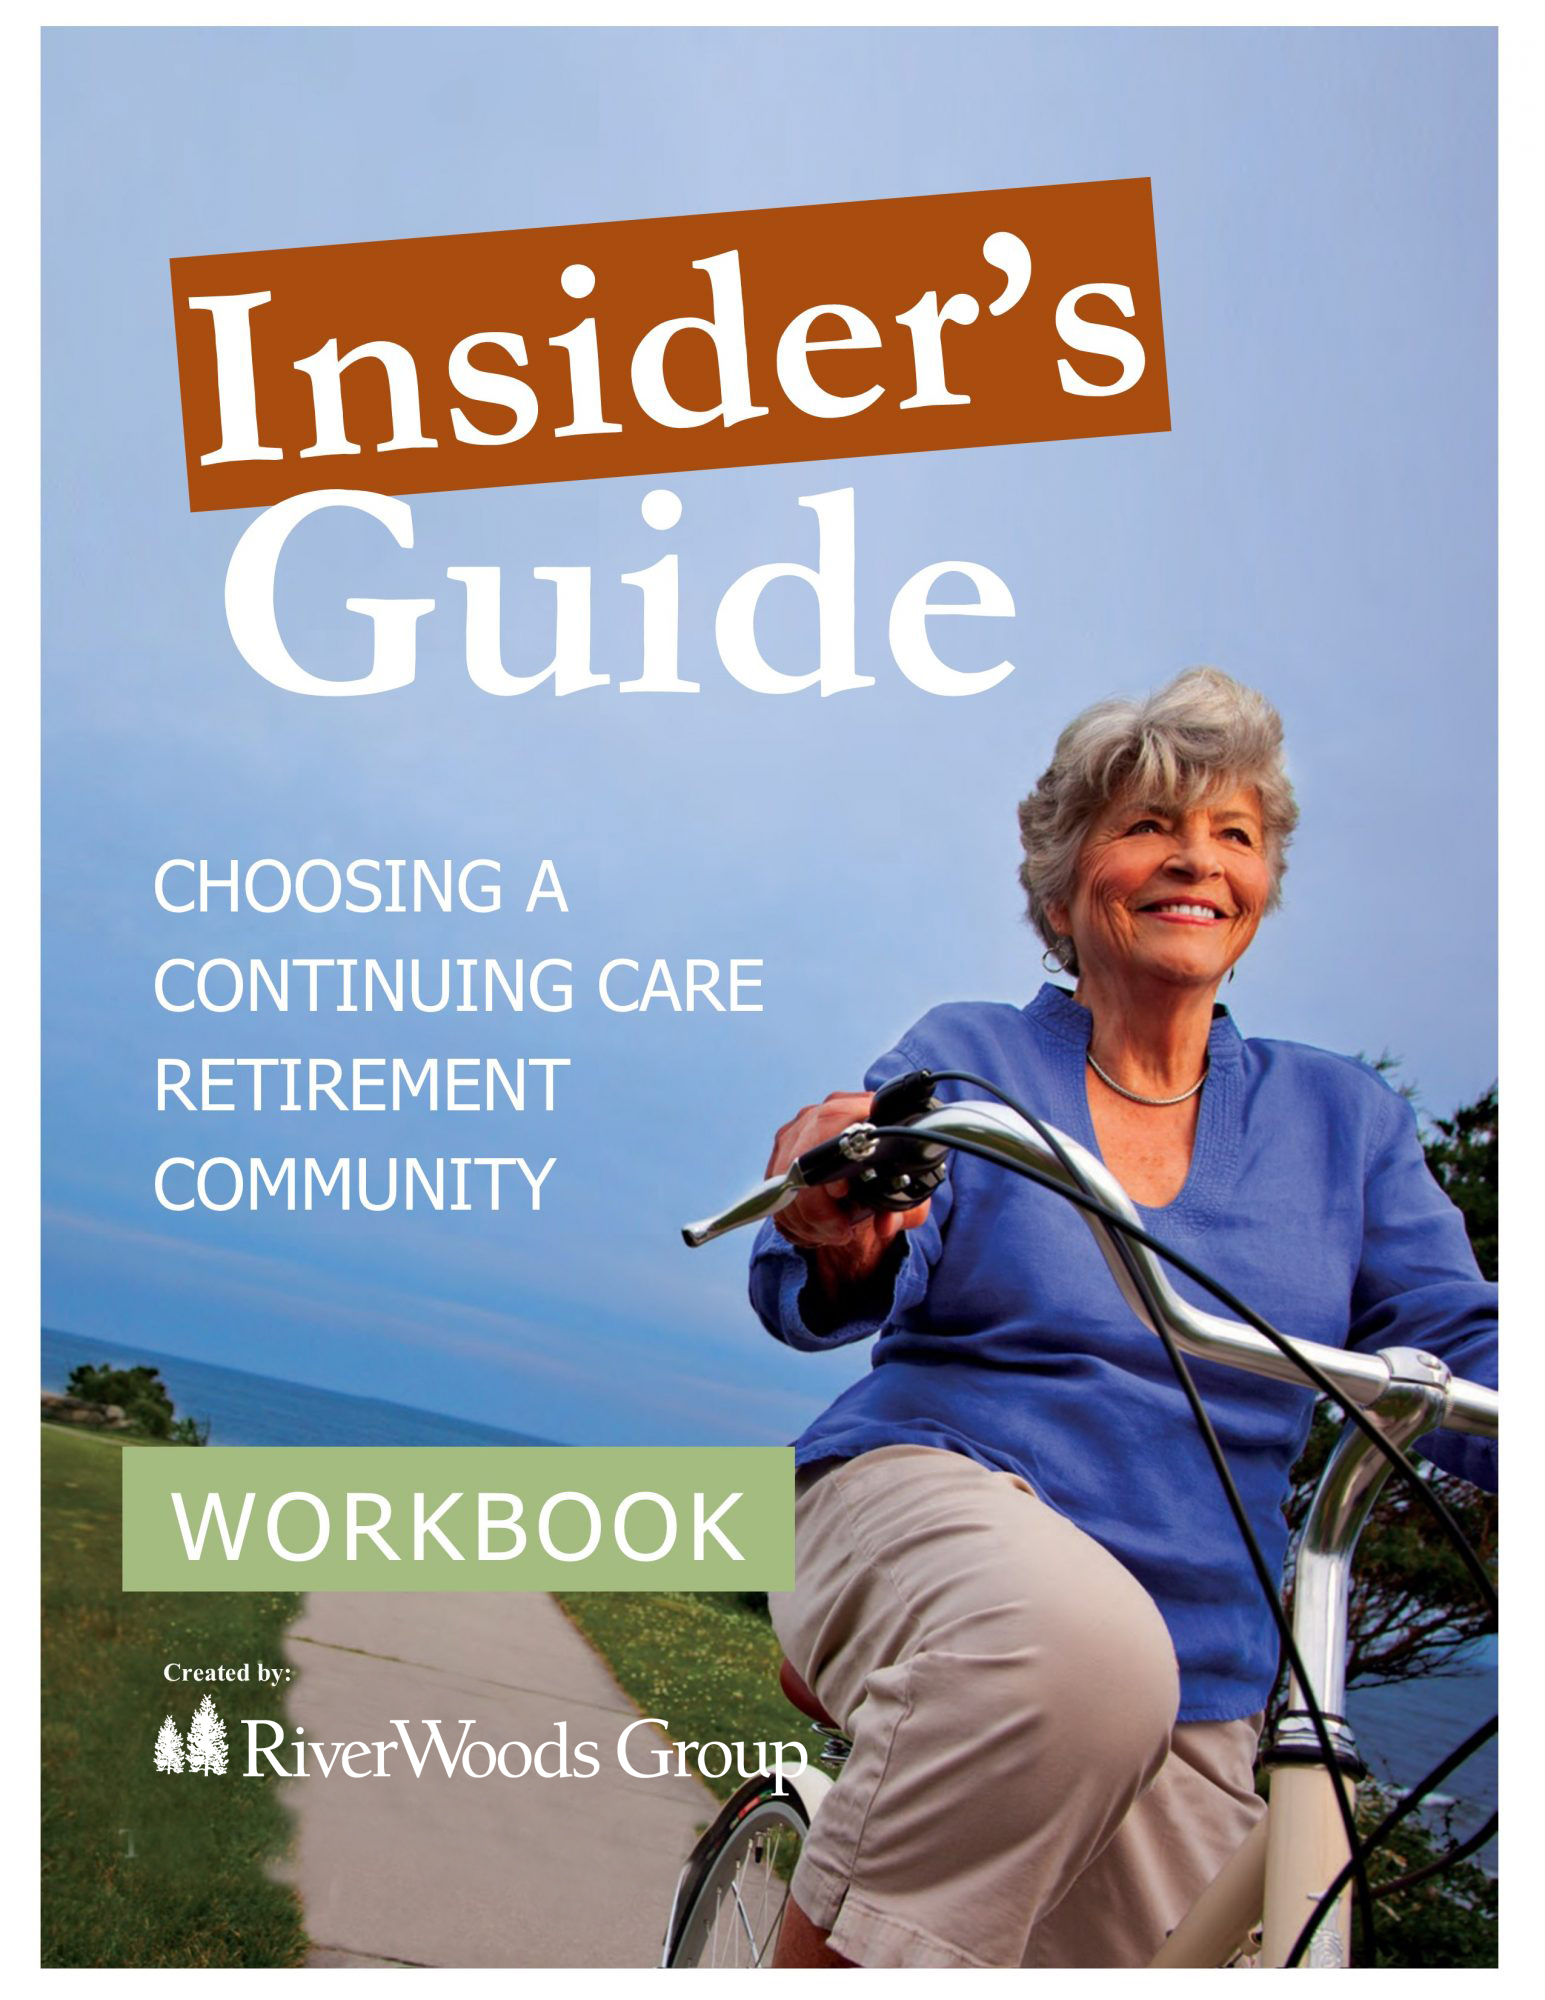 The Insiders Guide from RiverWoods Exeter in Exeter, NH